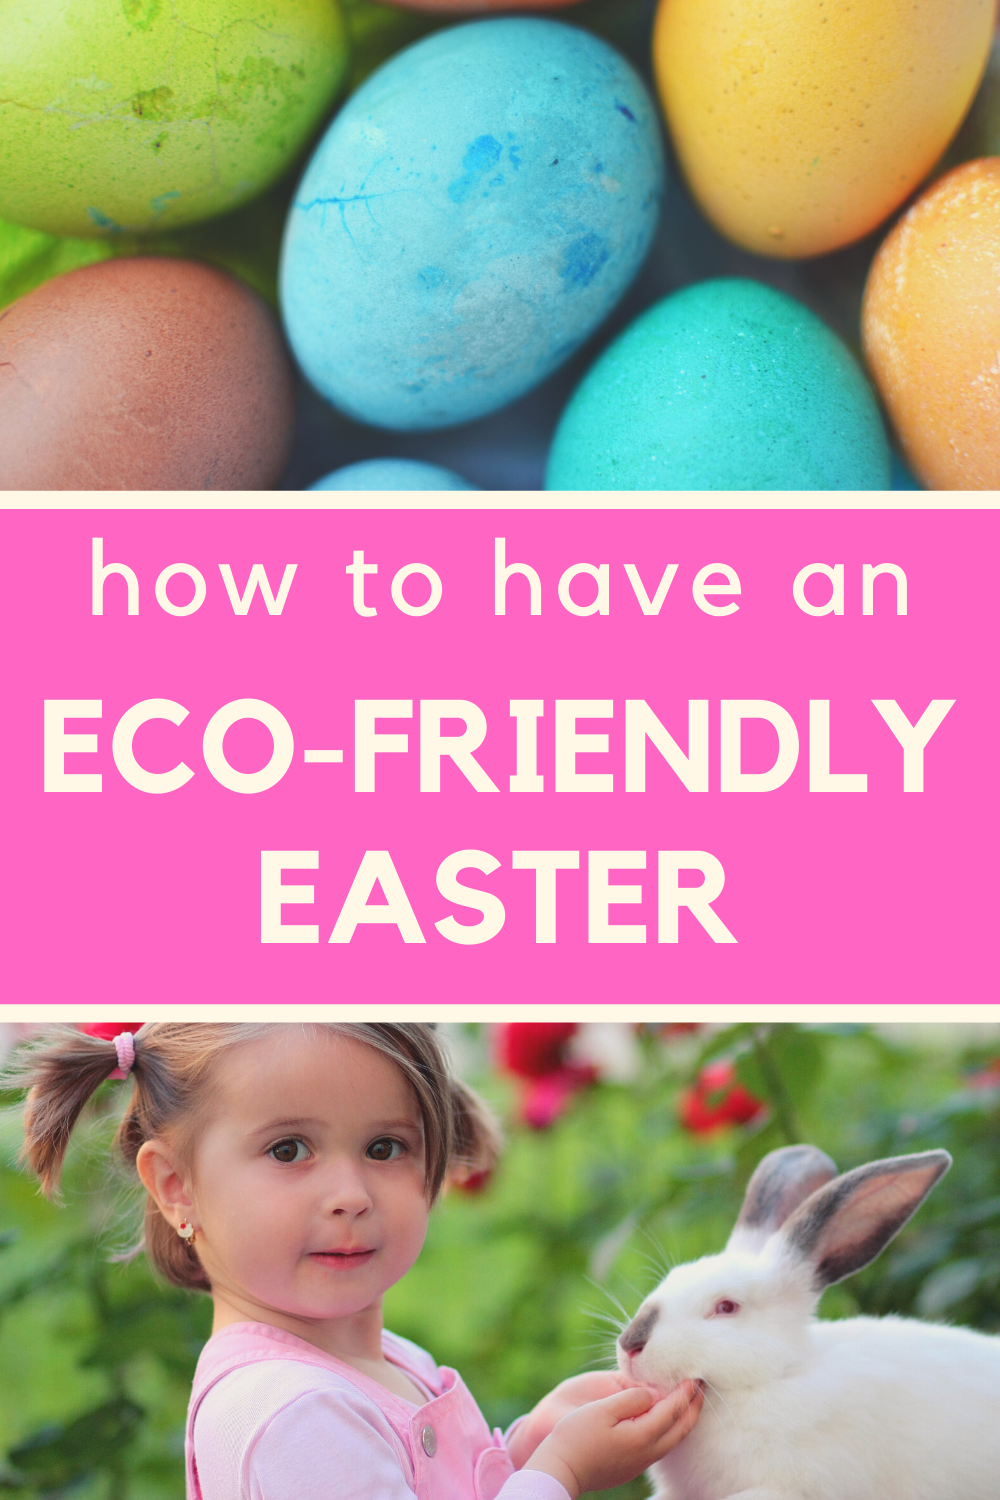 10 Ways To Have An Eco Friendly Easter In 2020 Eco Friendly